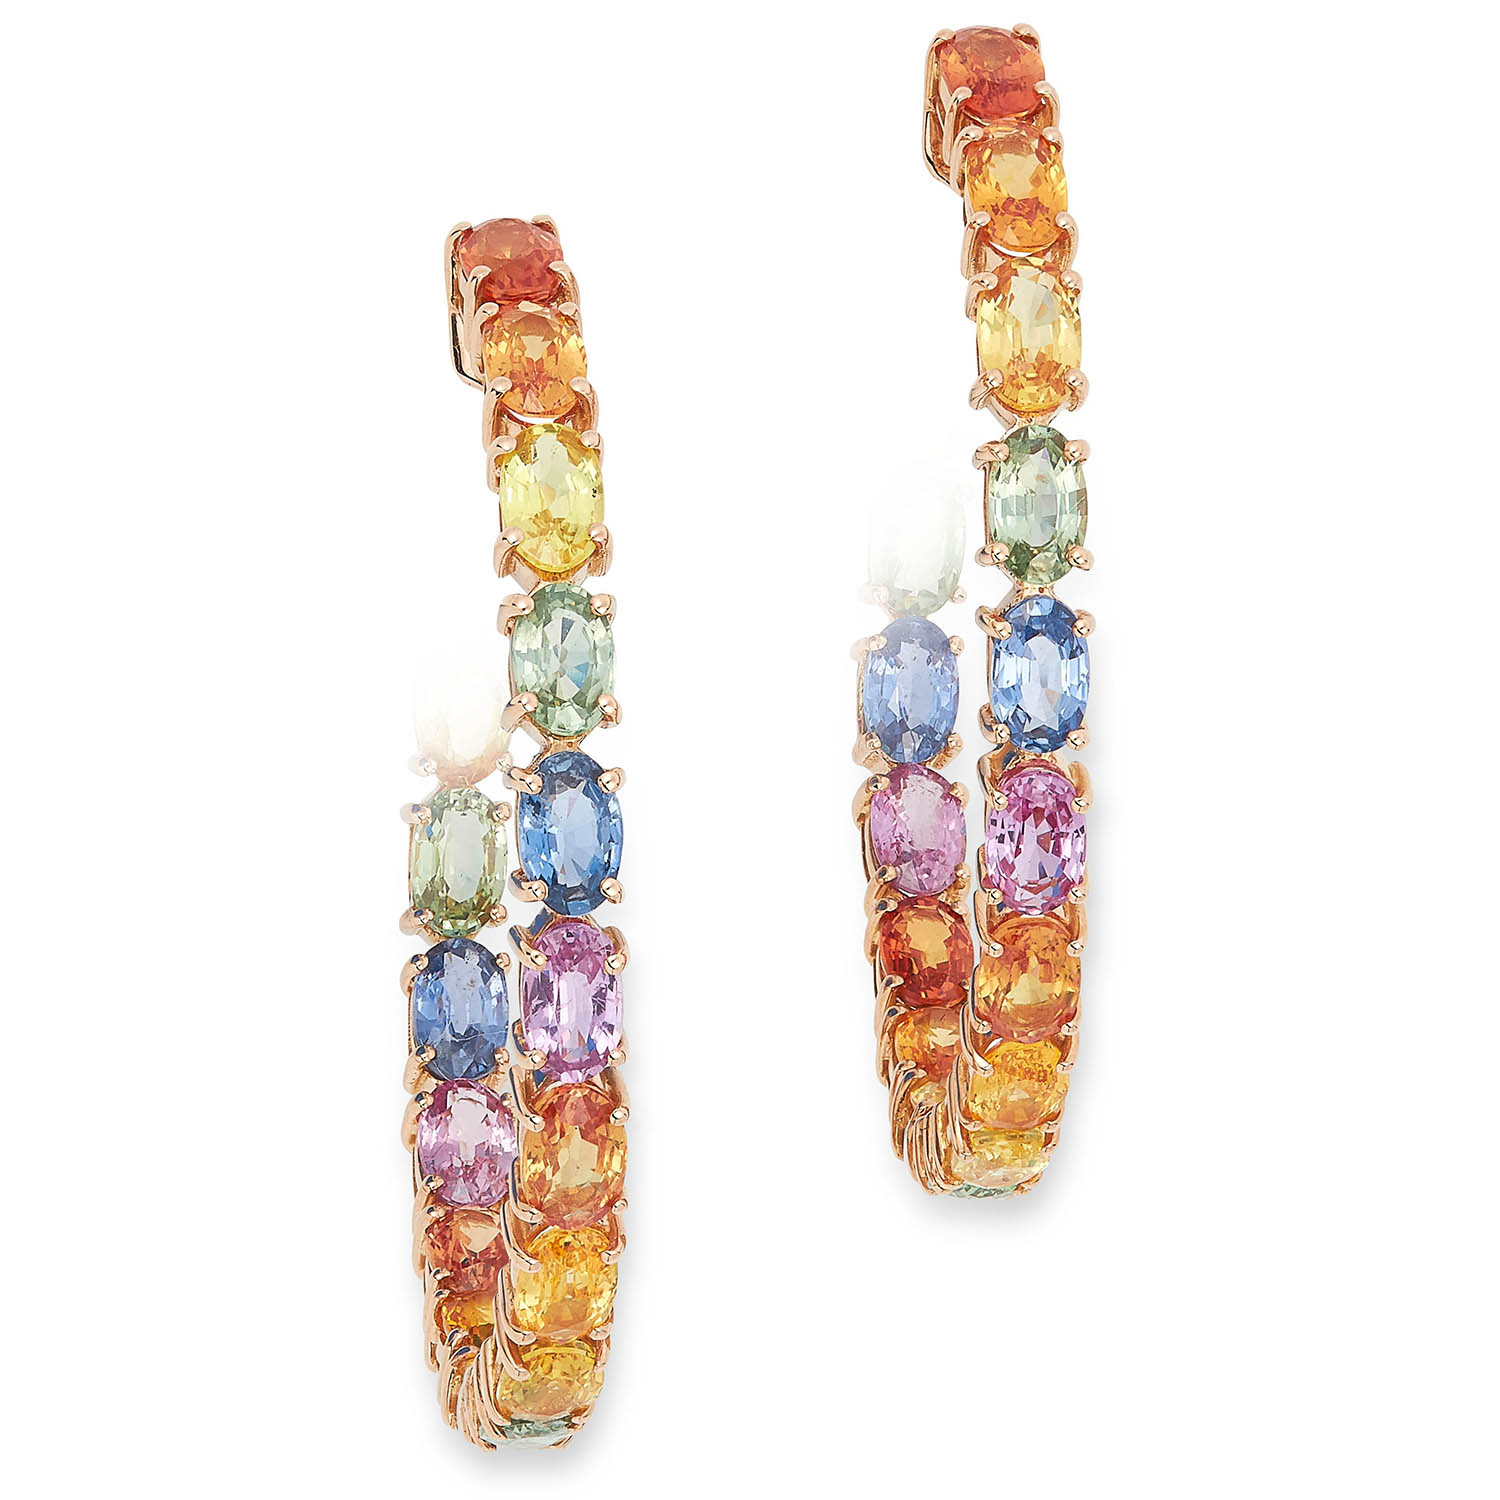 MULTICOLOUR SAPPHIRE HOOP EARRINGS set with multicolour oval cut sapphires, 4cm, 10.8g.